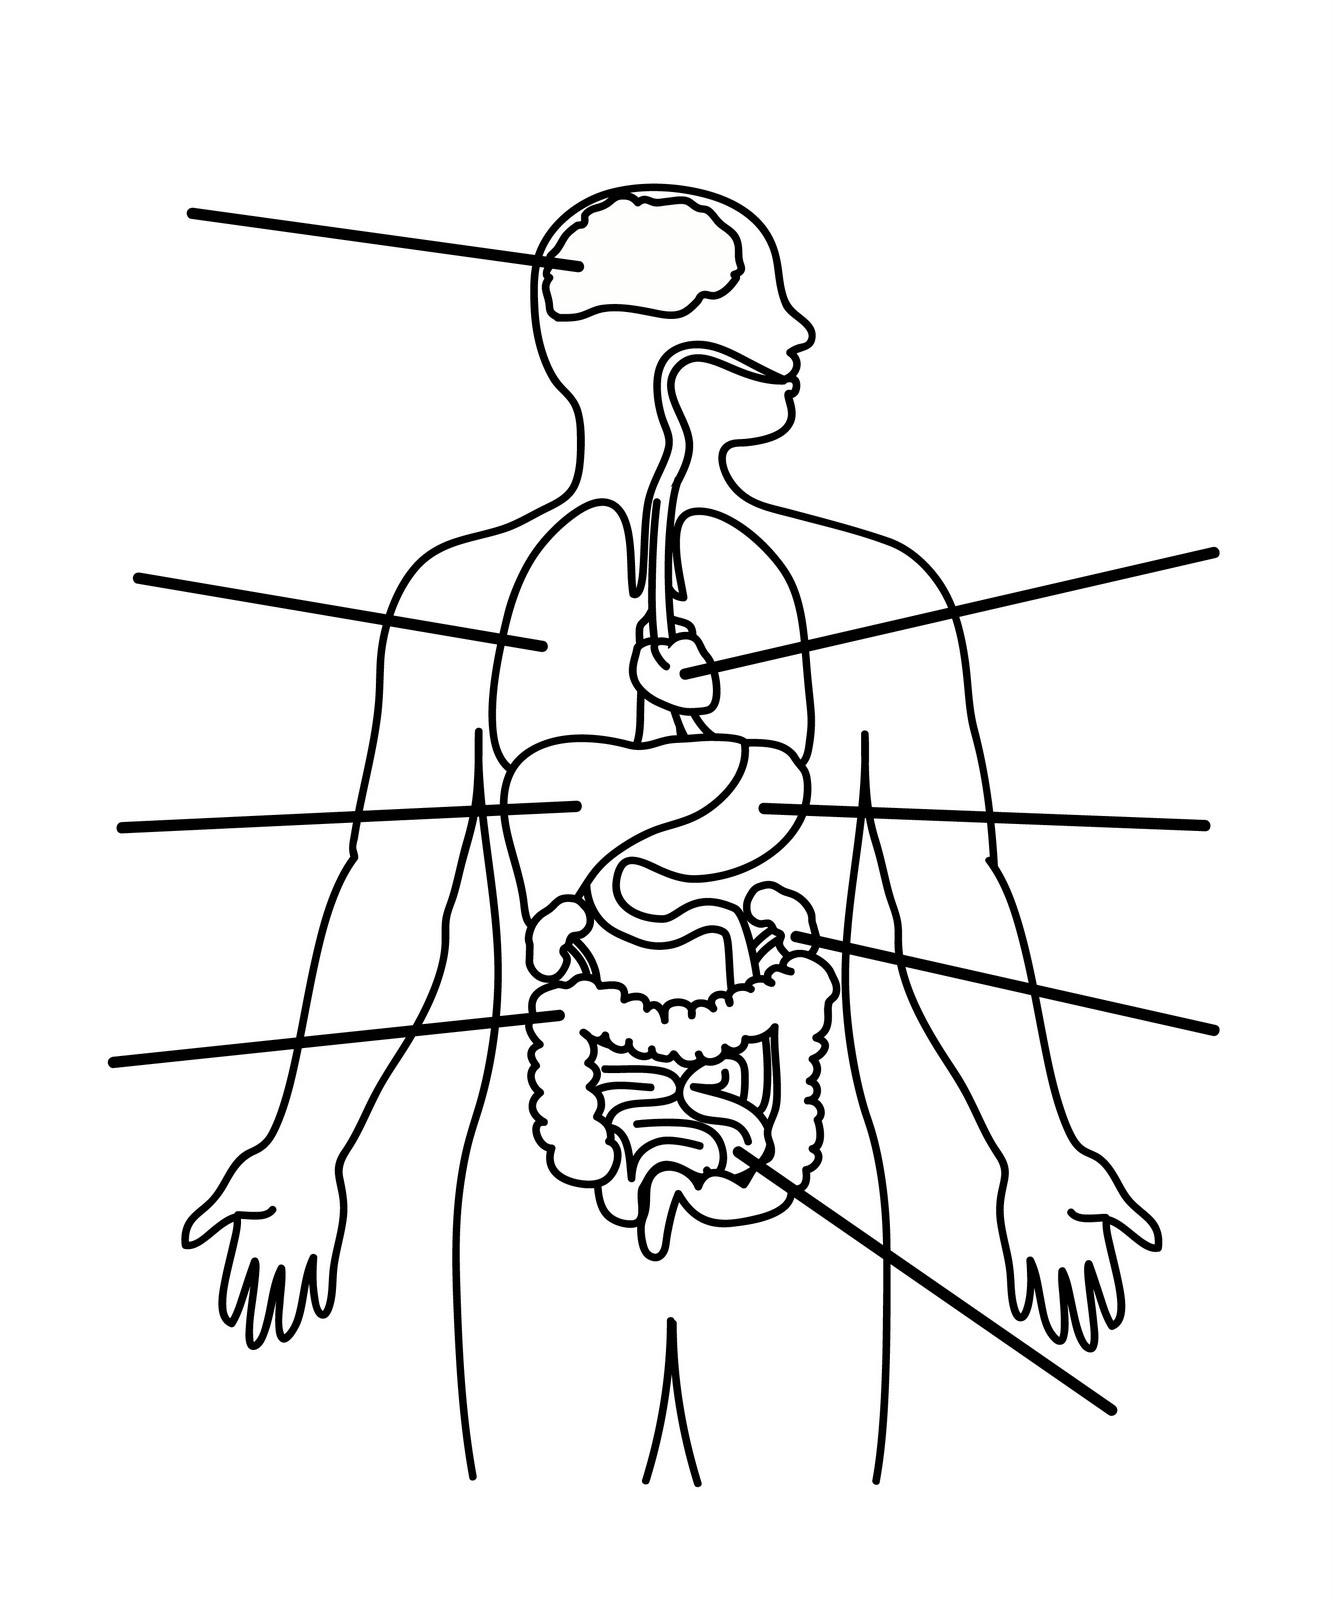 1333x1600 Attractive Child Body Outline Coloring Page Human Anatomy